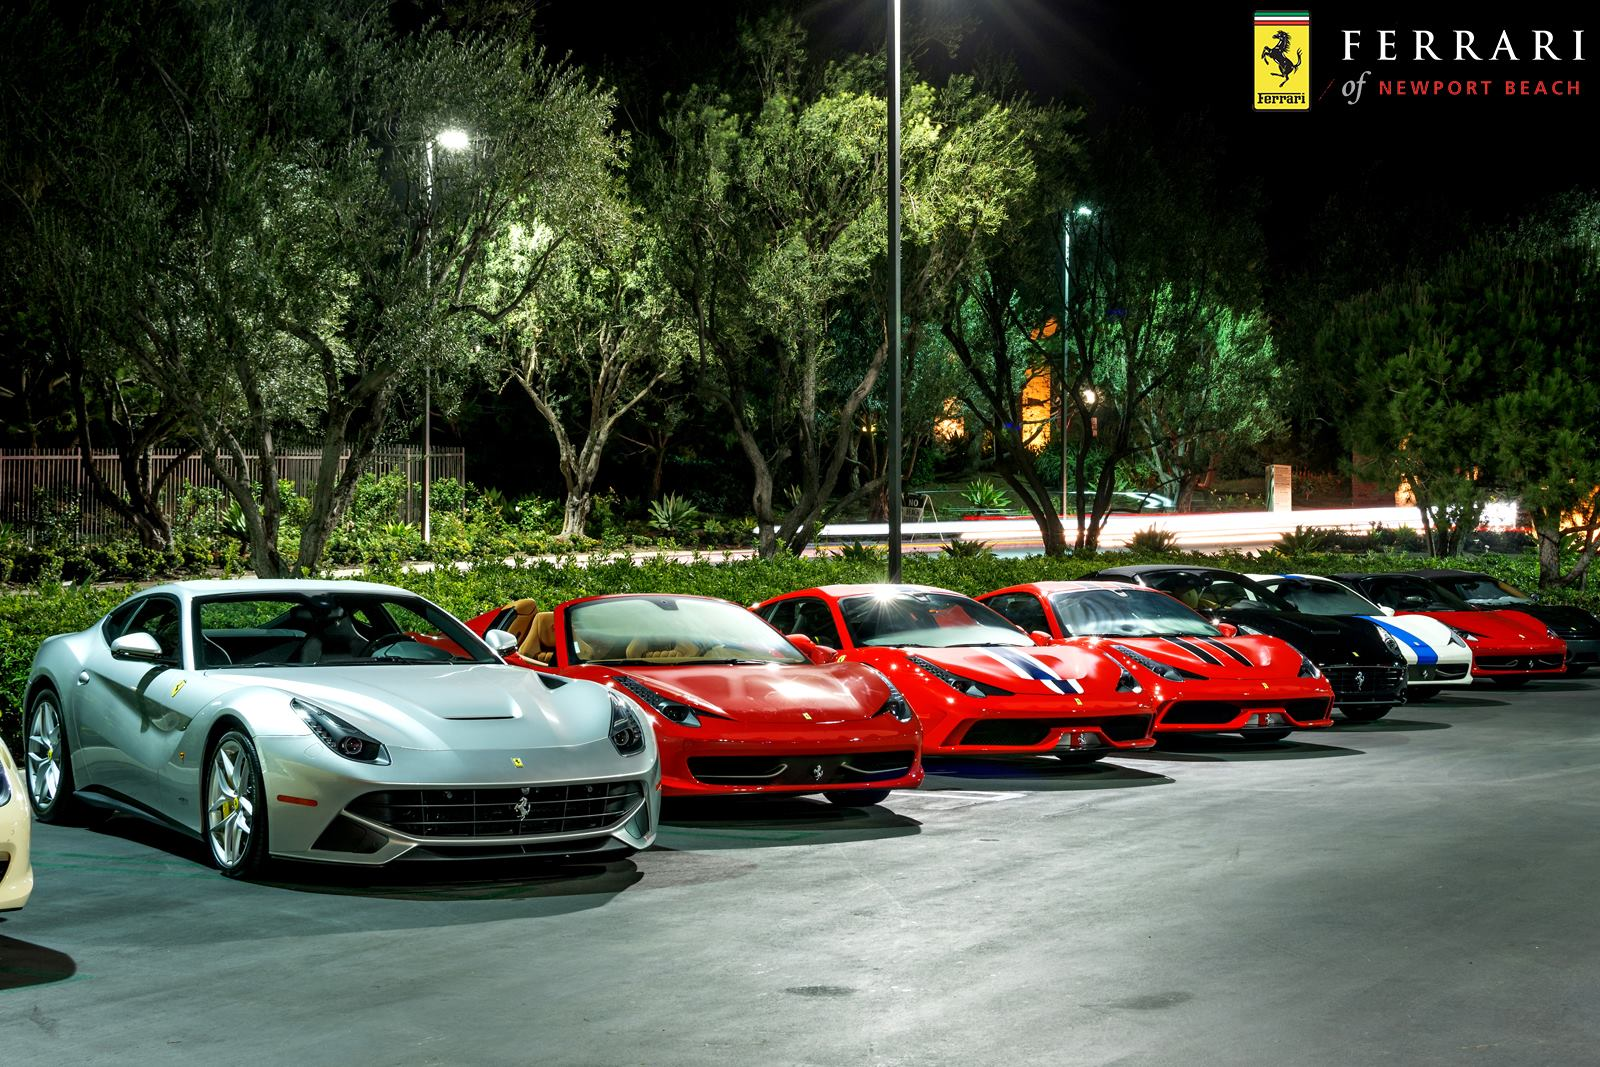 on february 9 ferrari of newport beach held its annual client. Cars Review. Best American Auto & Cars Review